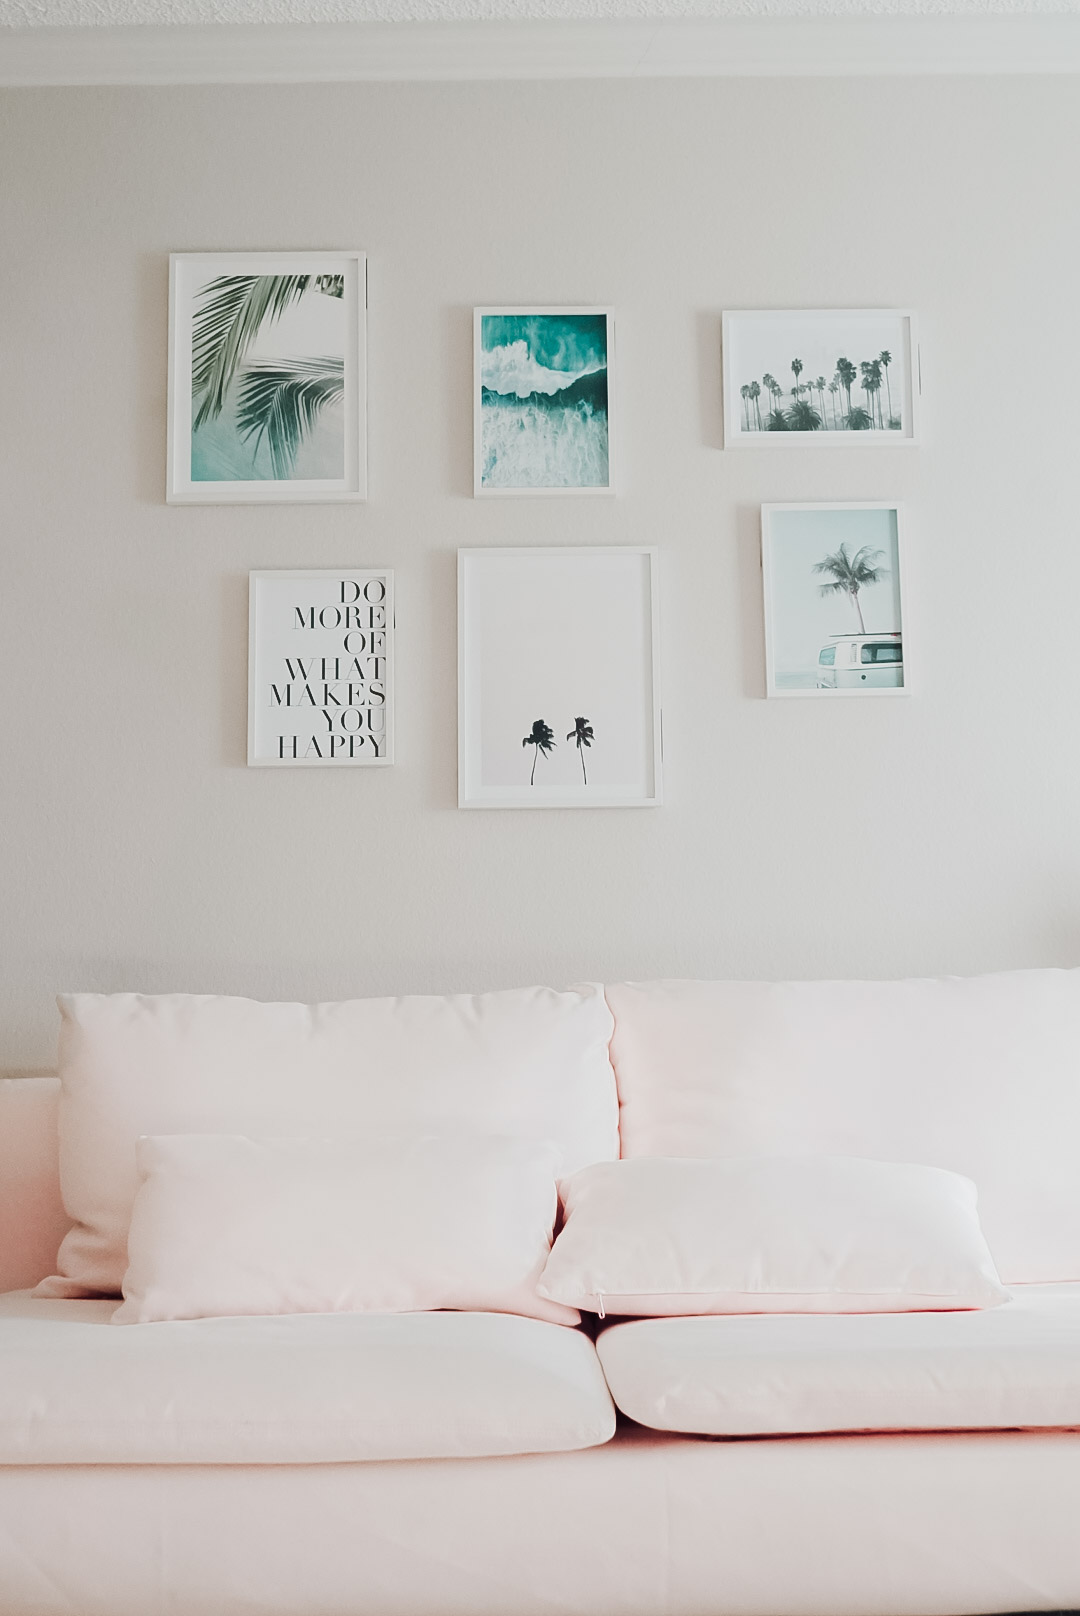 New boho chic gallery wall